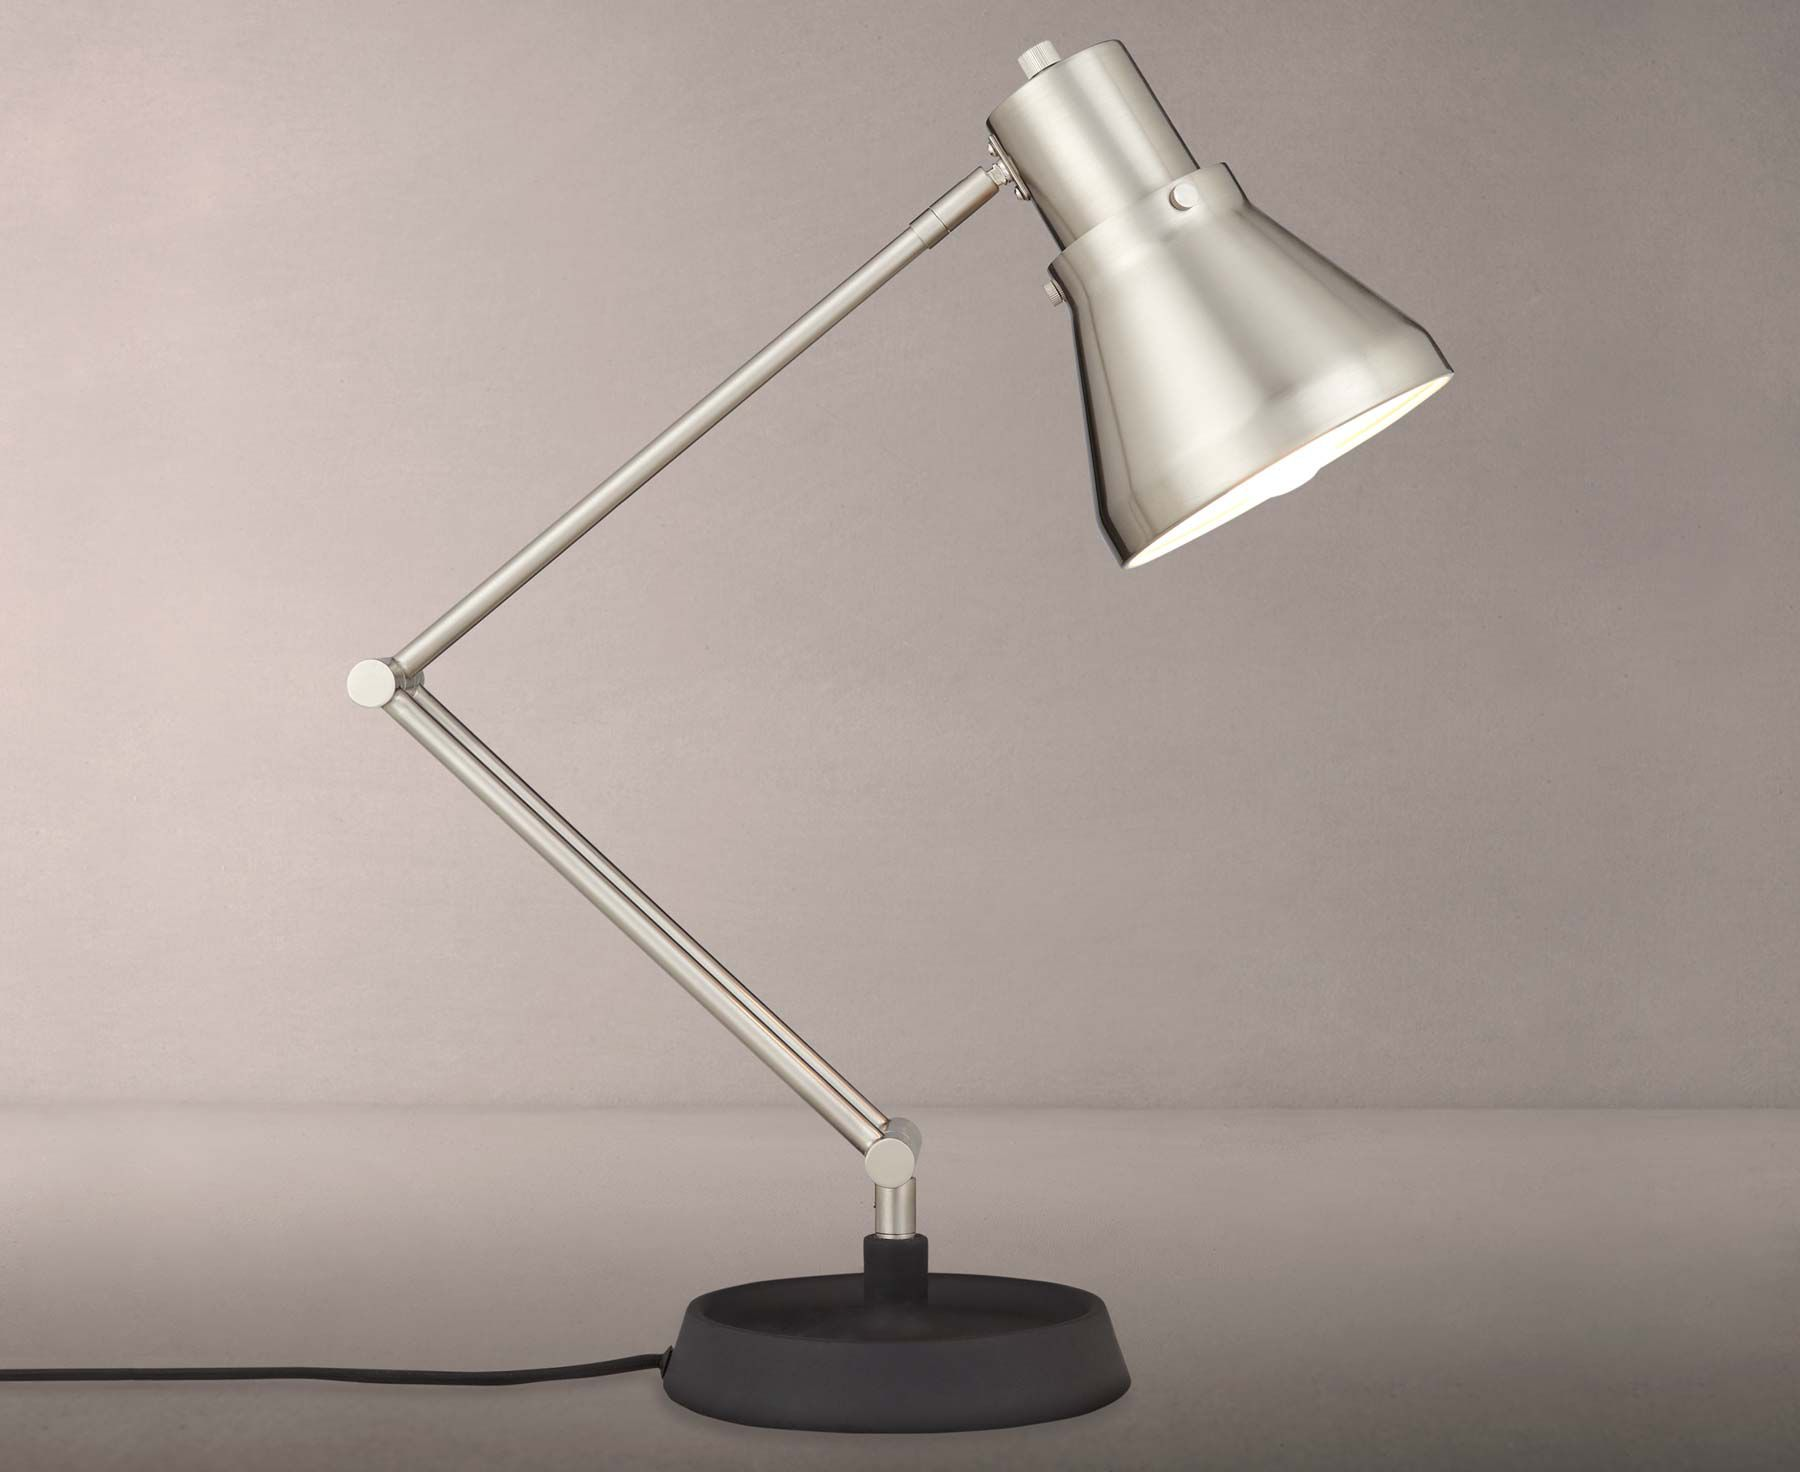 How To Choose Lighting For Your Home Can The Existing Circuit Support Extra Light Fittings Task Lamps